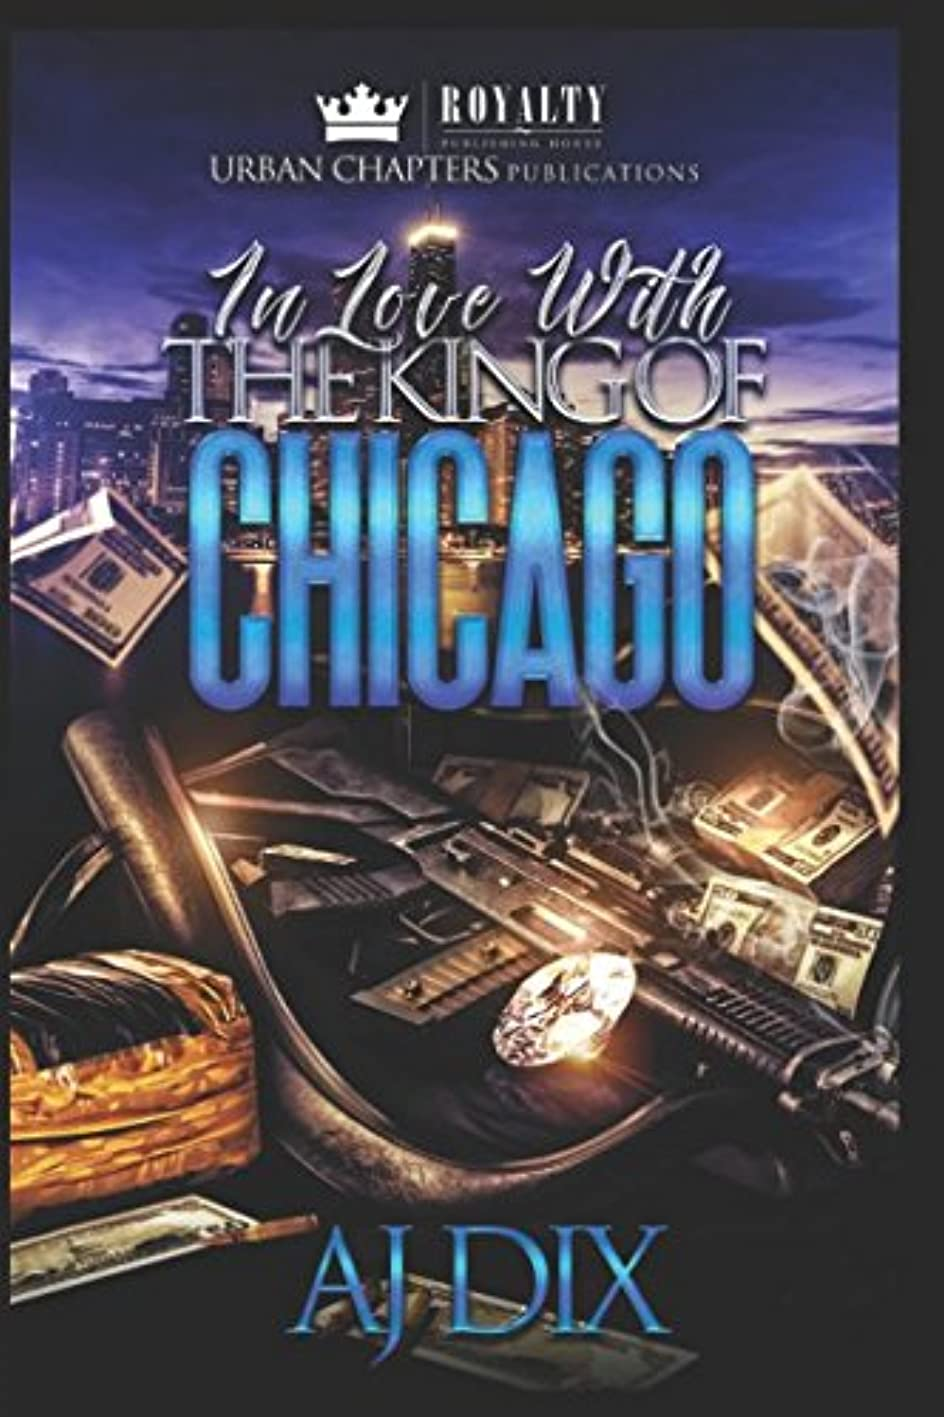 In Love With The King Of Chicago yzhqvailqiz544